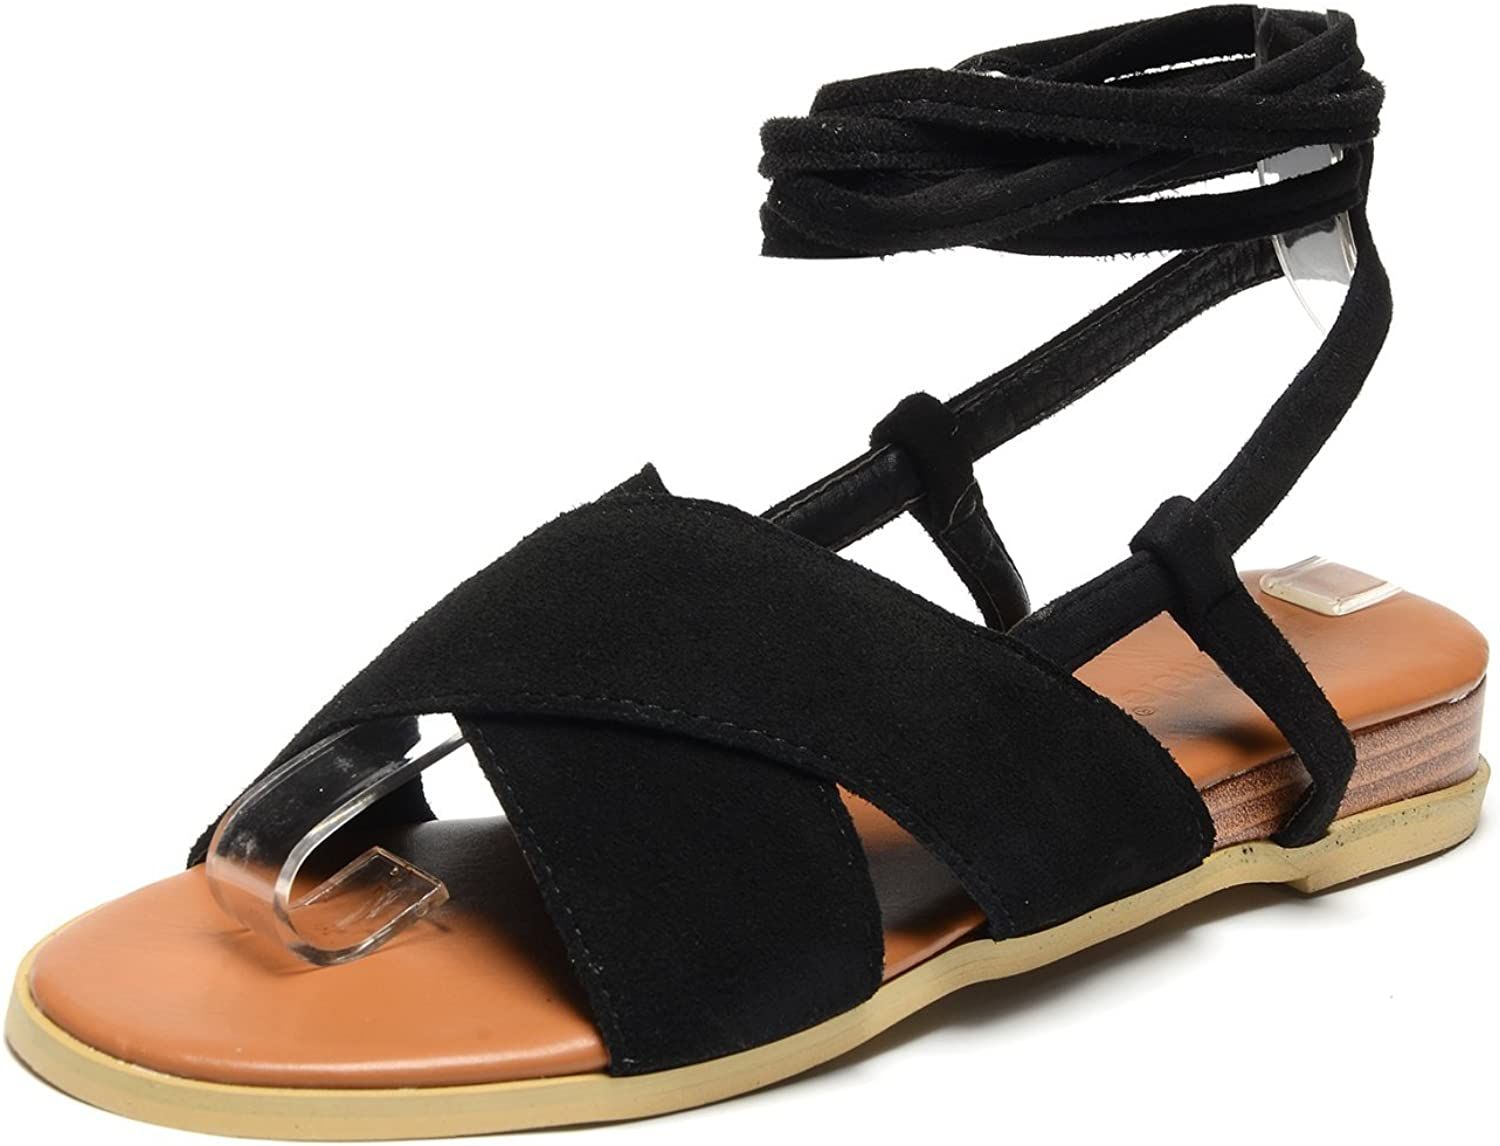 Odema Womens Slingback Flat Sandals Open Toe Lace Up Mid Calf Sandals Size 6-8.5